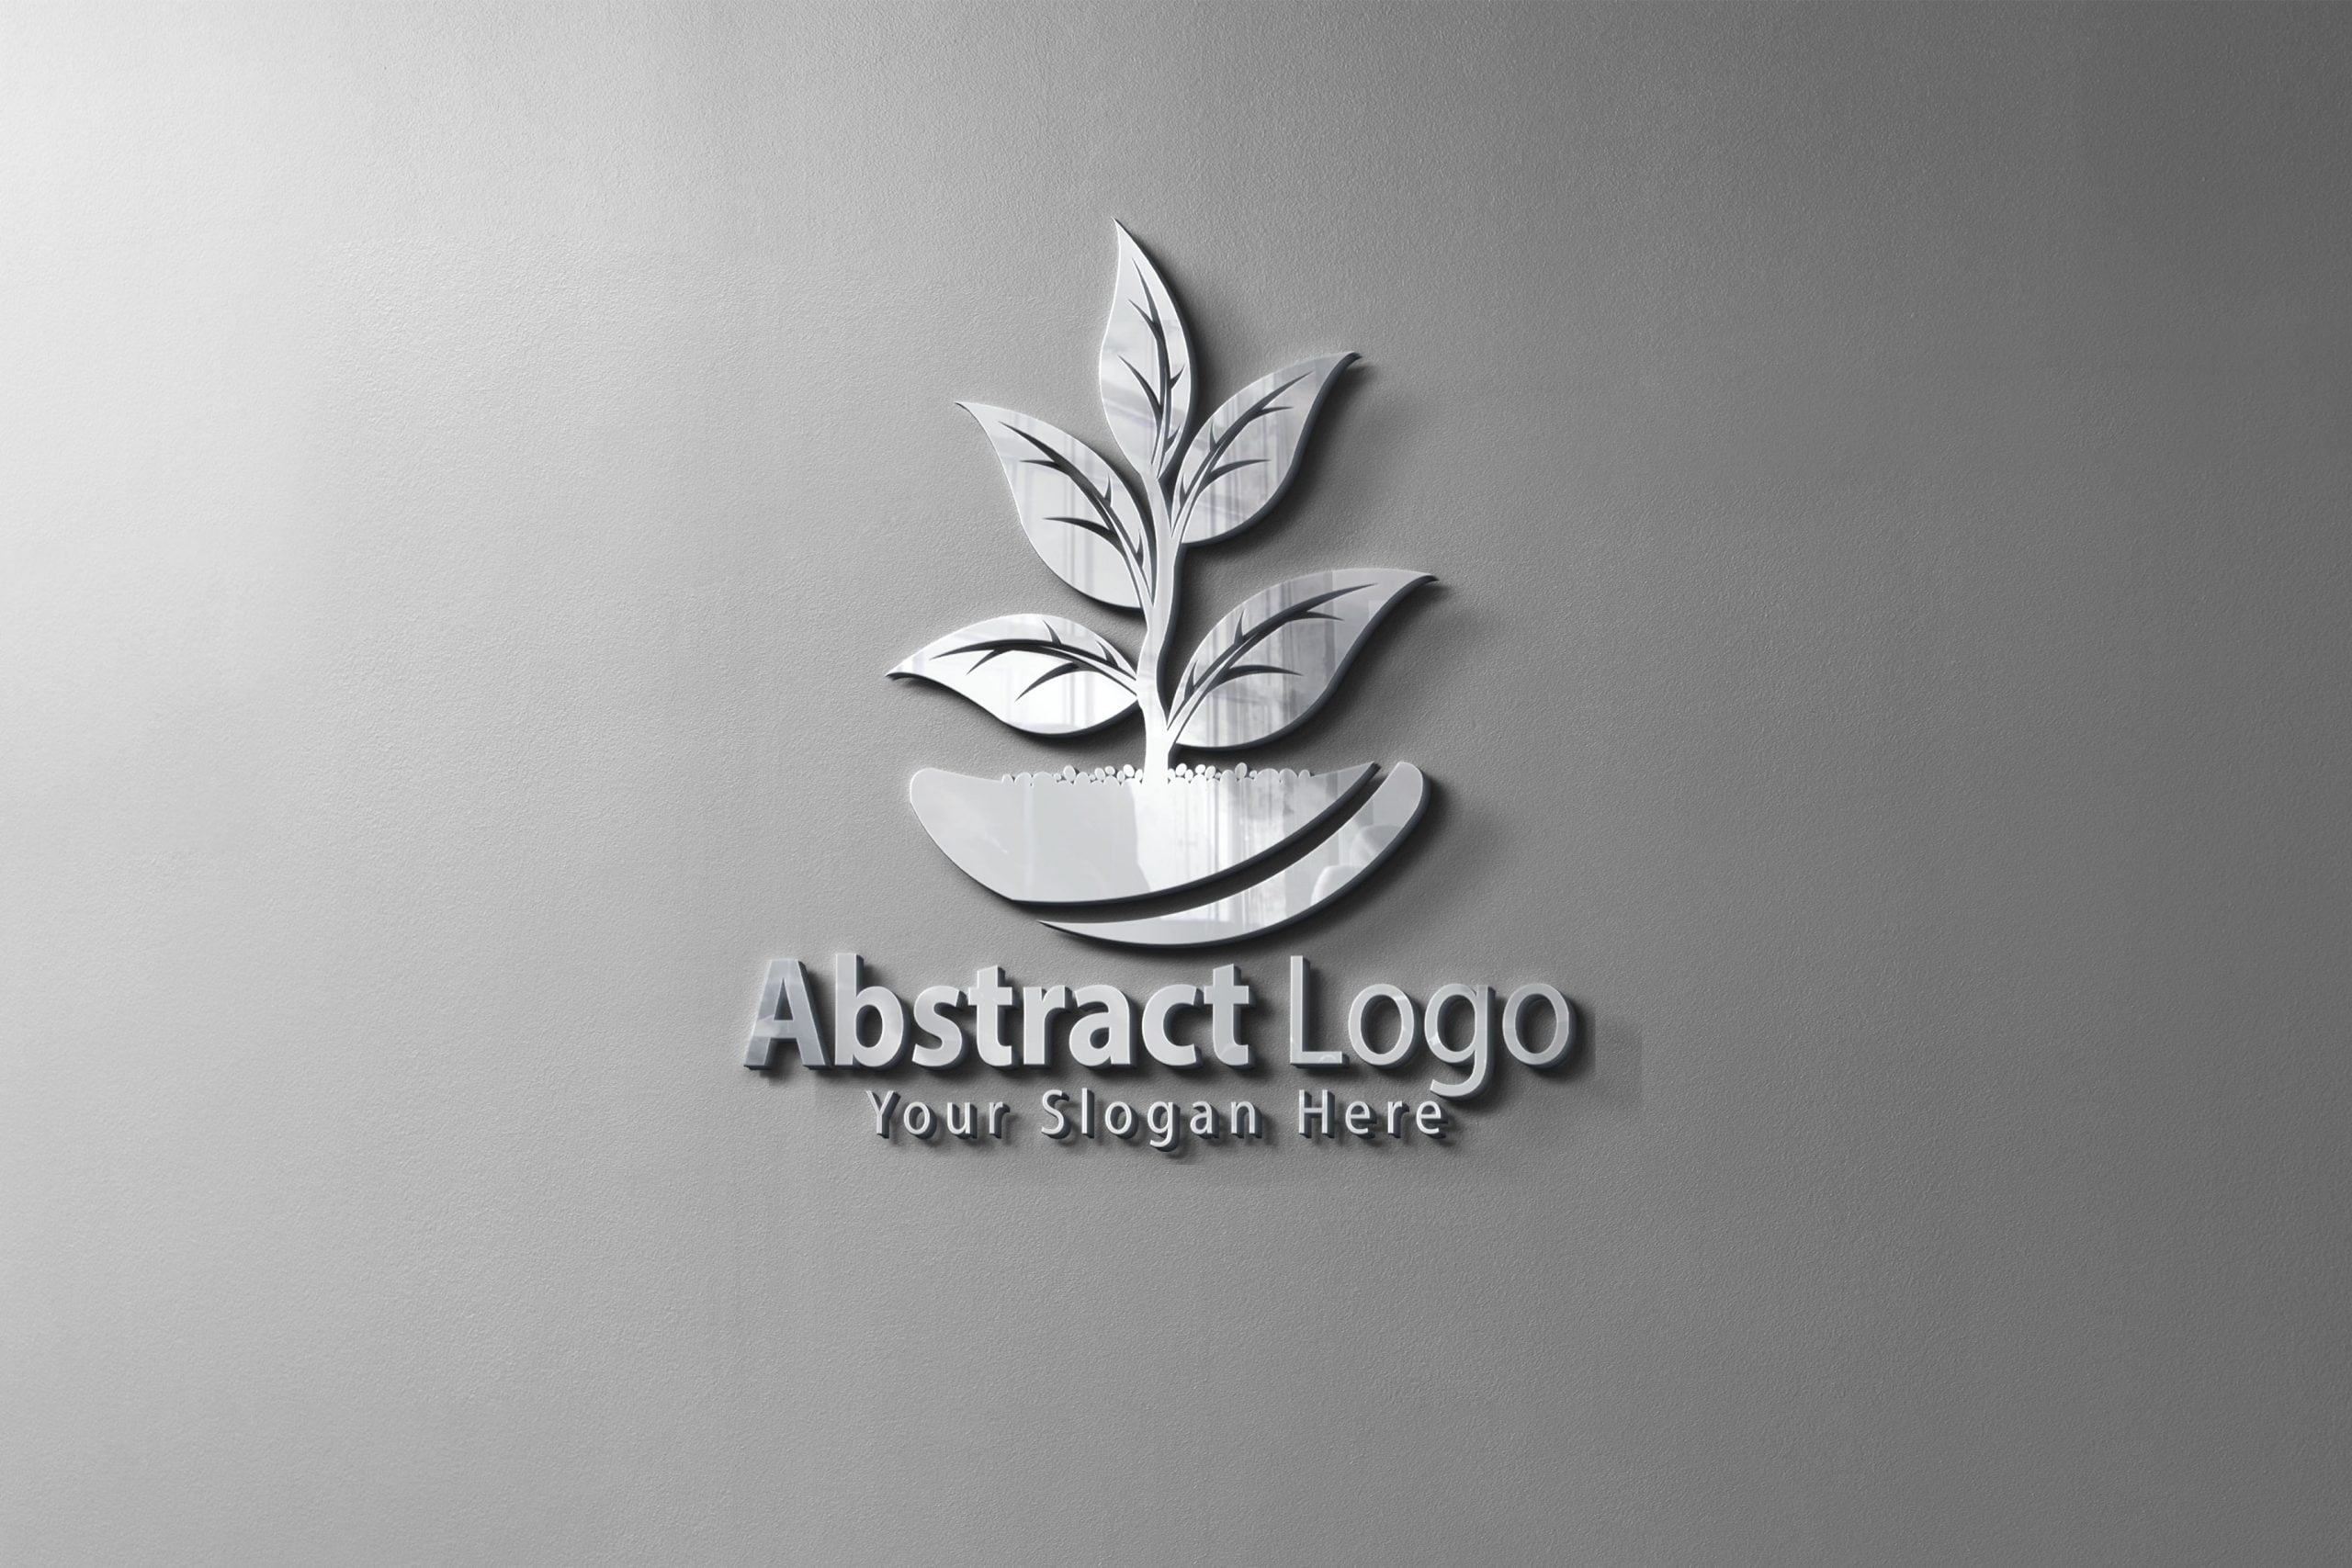 Abstract Logo on silver metal